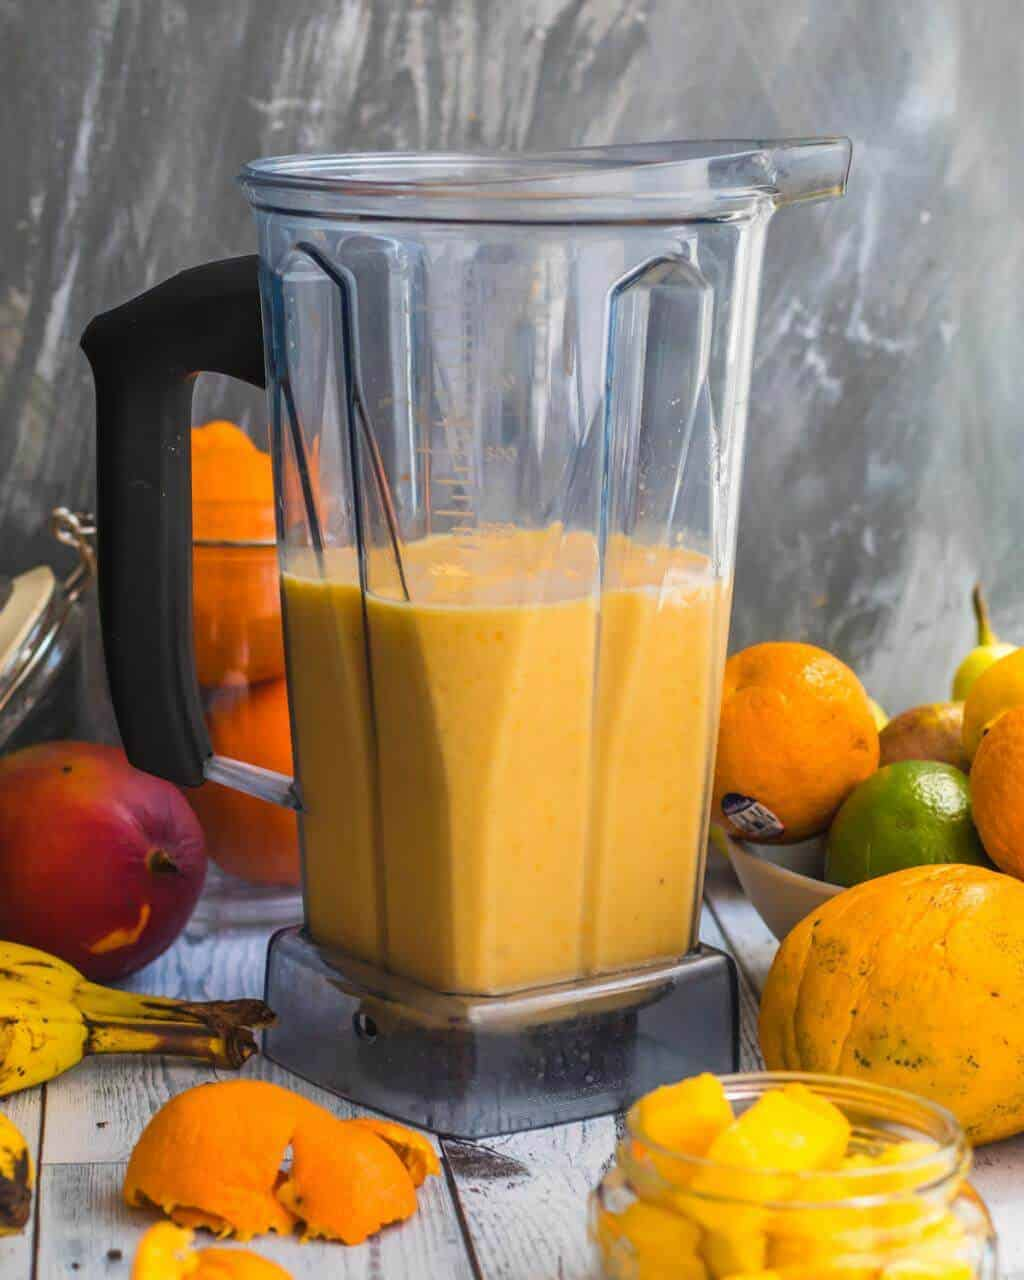 Vitamix blender filled with the citrus mango smoothie and surrounded by different tropical fruits